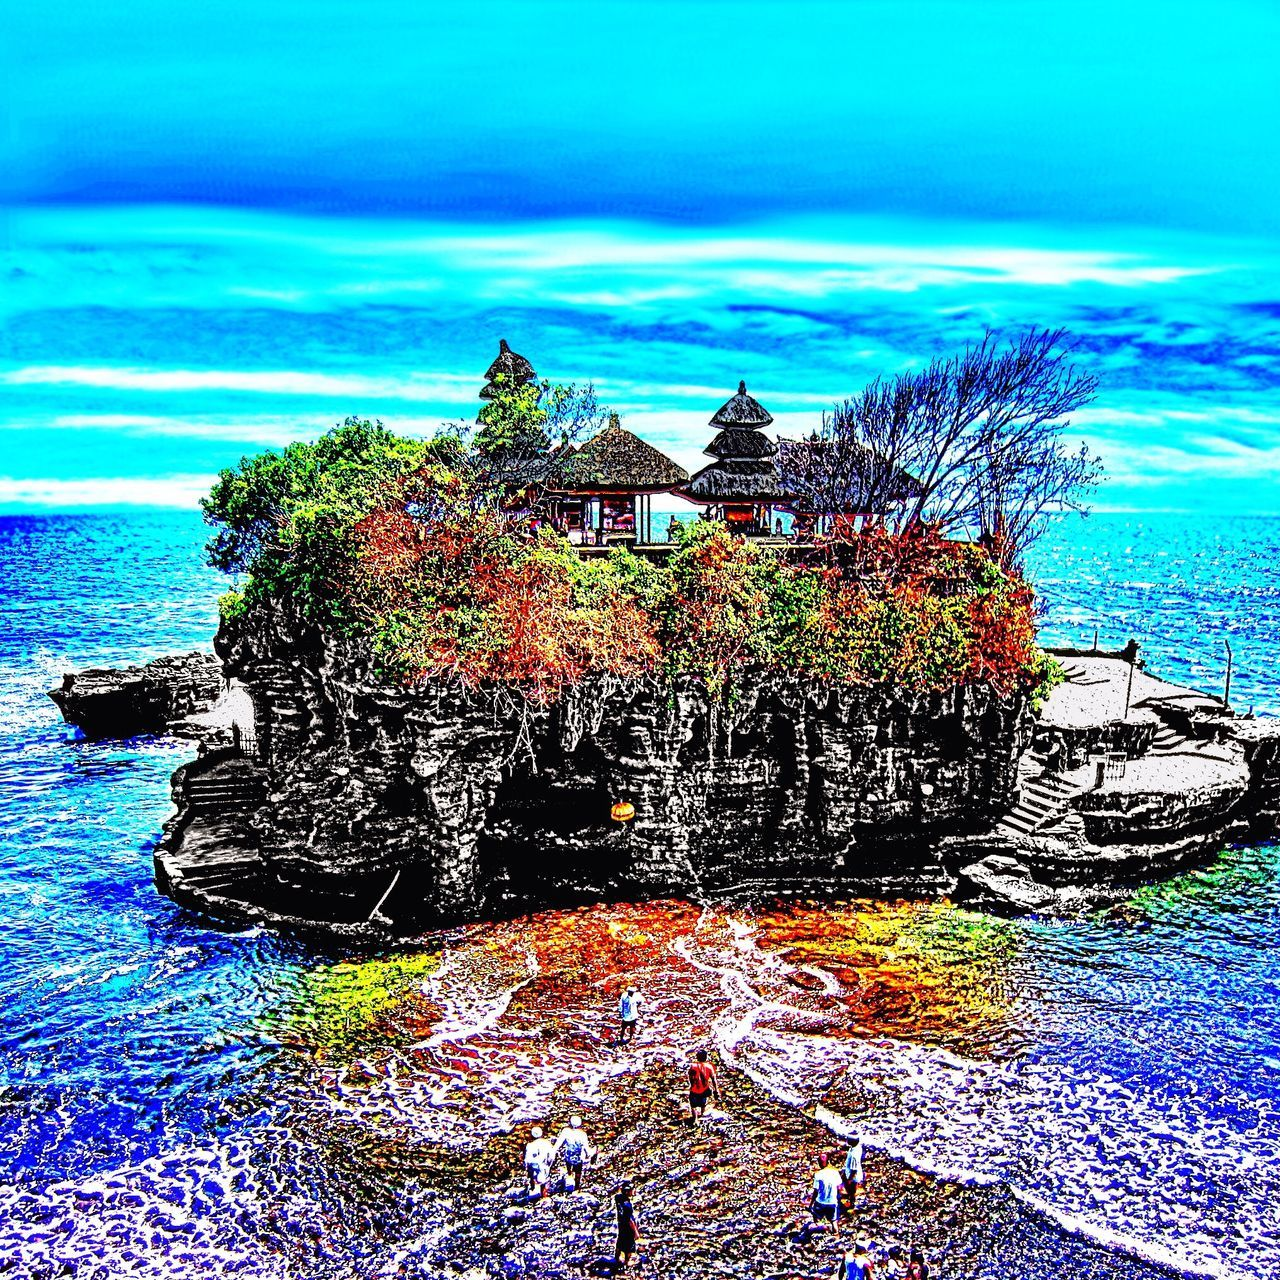 Enjoying the beautiful view and a good glass of wine makes you wish a day like this will never end 😉 Bali Bali, Indonesia Sacred Places Hello World Landscape_Collection Religion Peace Peace And Quiet Sea And Sky Lovely Temple Temples Seascape Summer Views Enjoying The View Indonesia_allshots Exploring Visiting EyeEm Nature Lover Summer Memories 🌄 Karma